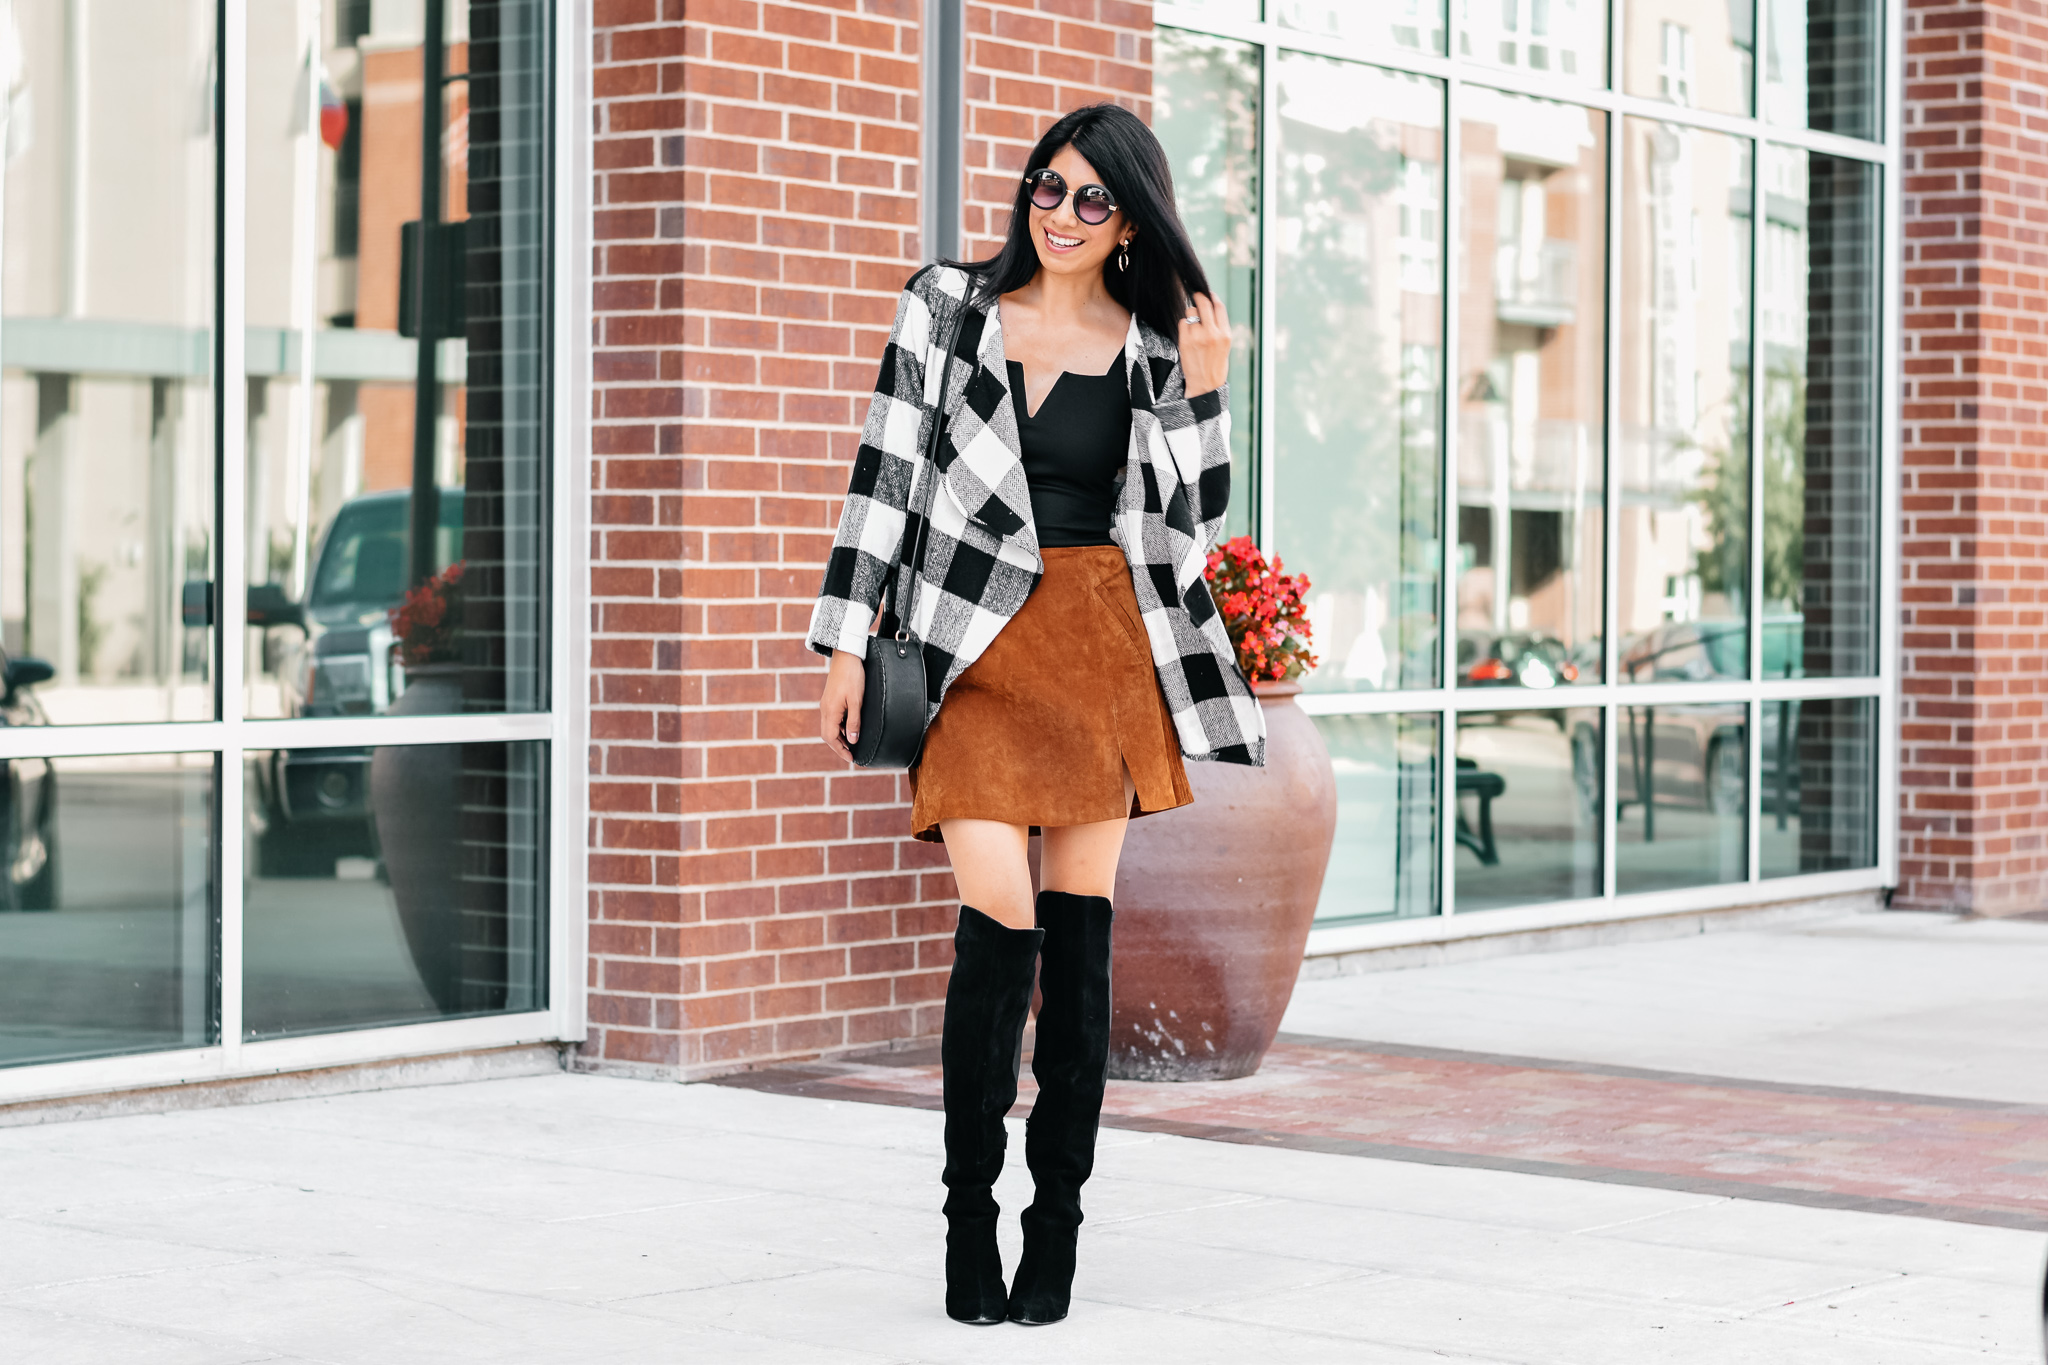 Favlux Buffalo Check Plaid Cardigan Sweater by Stage.com